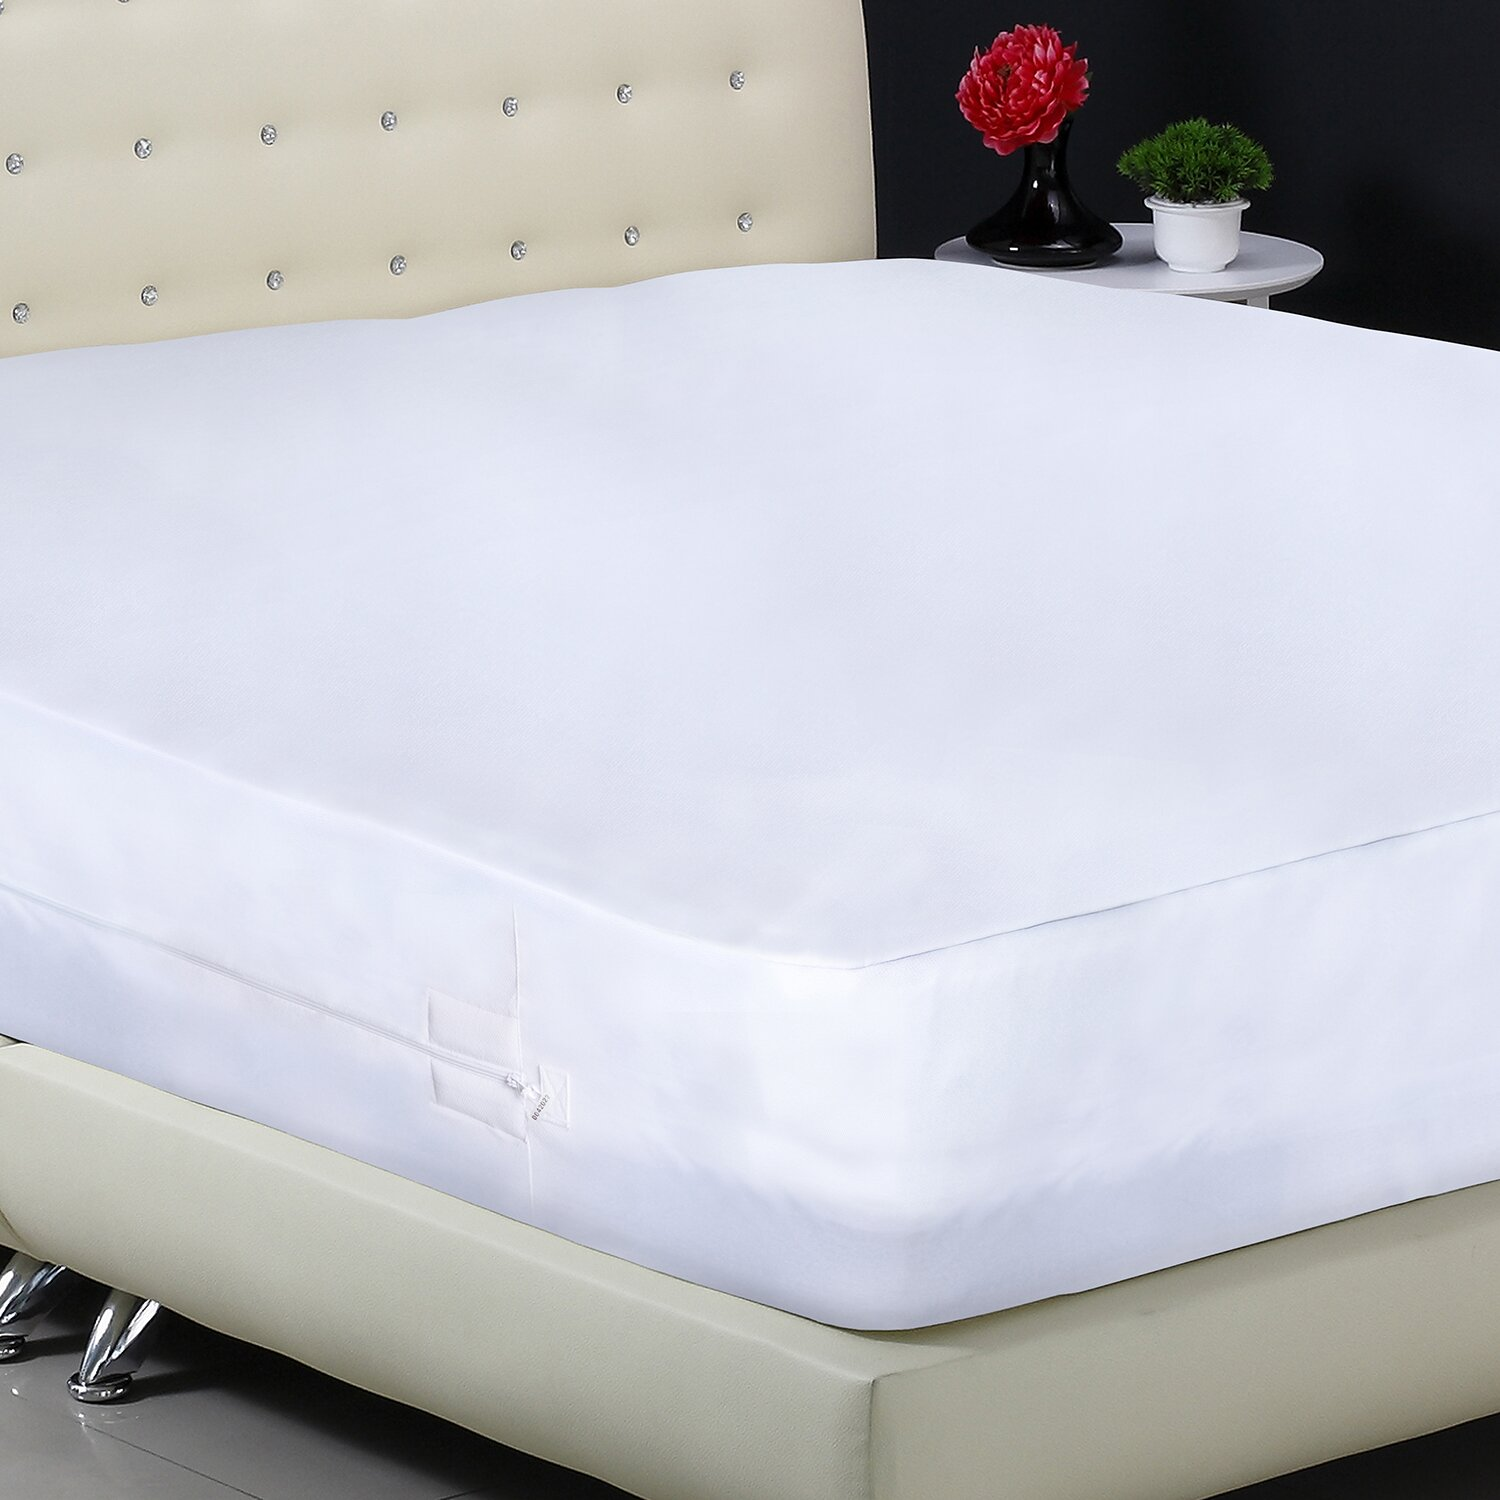 Protect a bed aller zip smooth anti allergy and bed bug for Bed bug resistant mattress